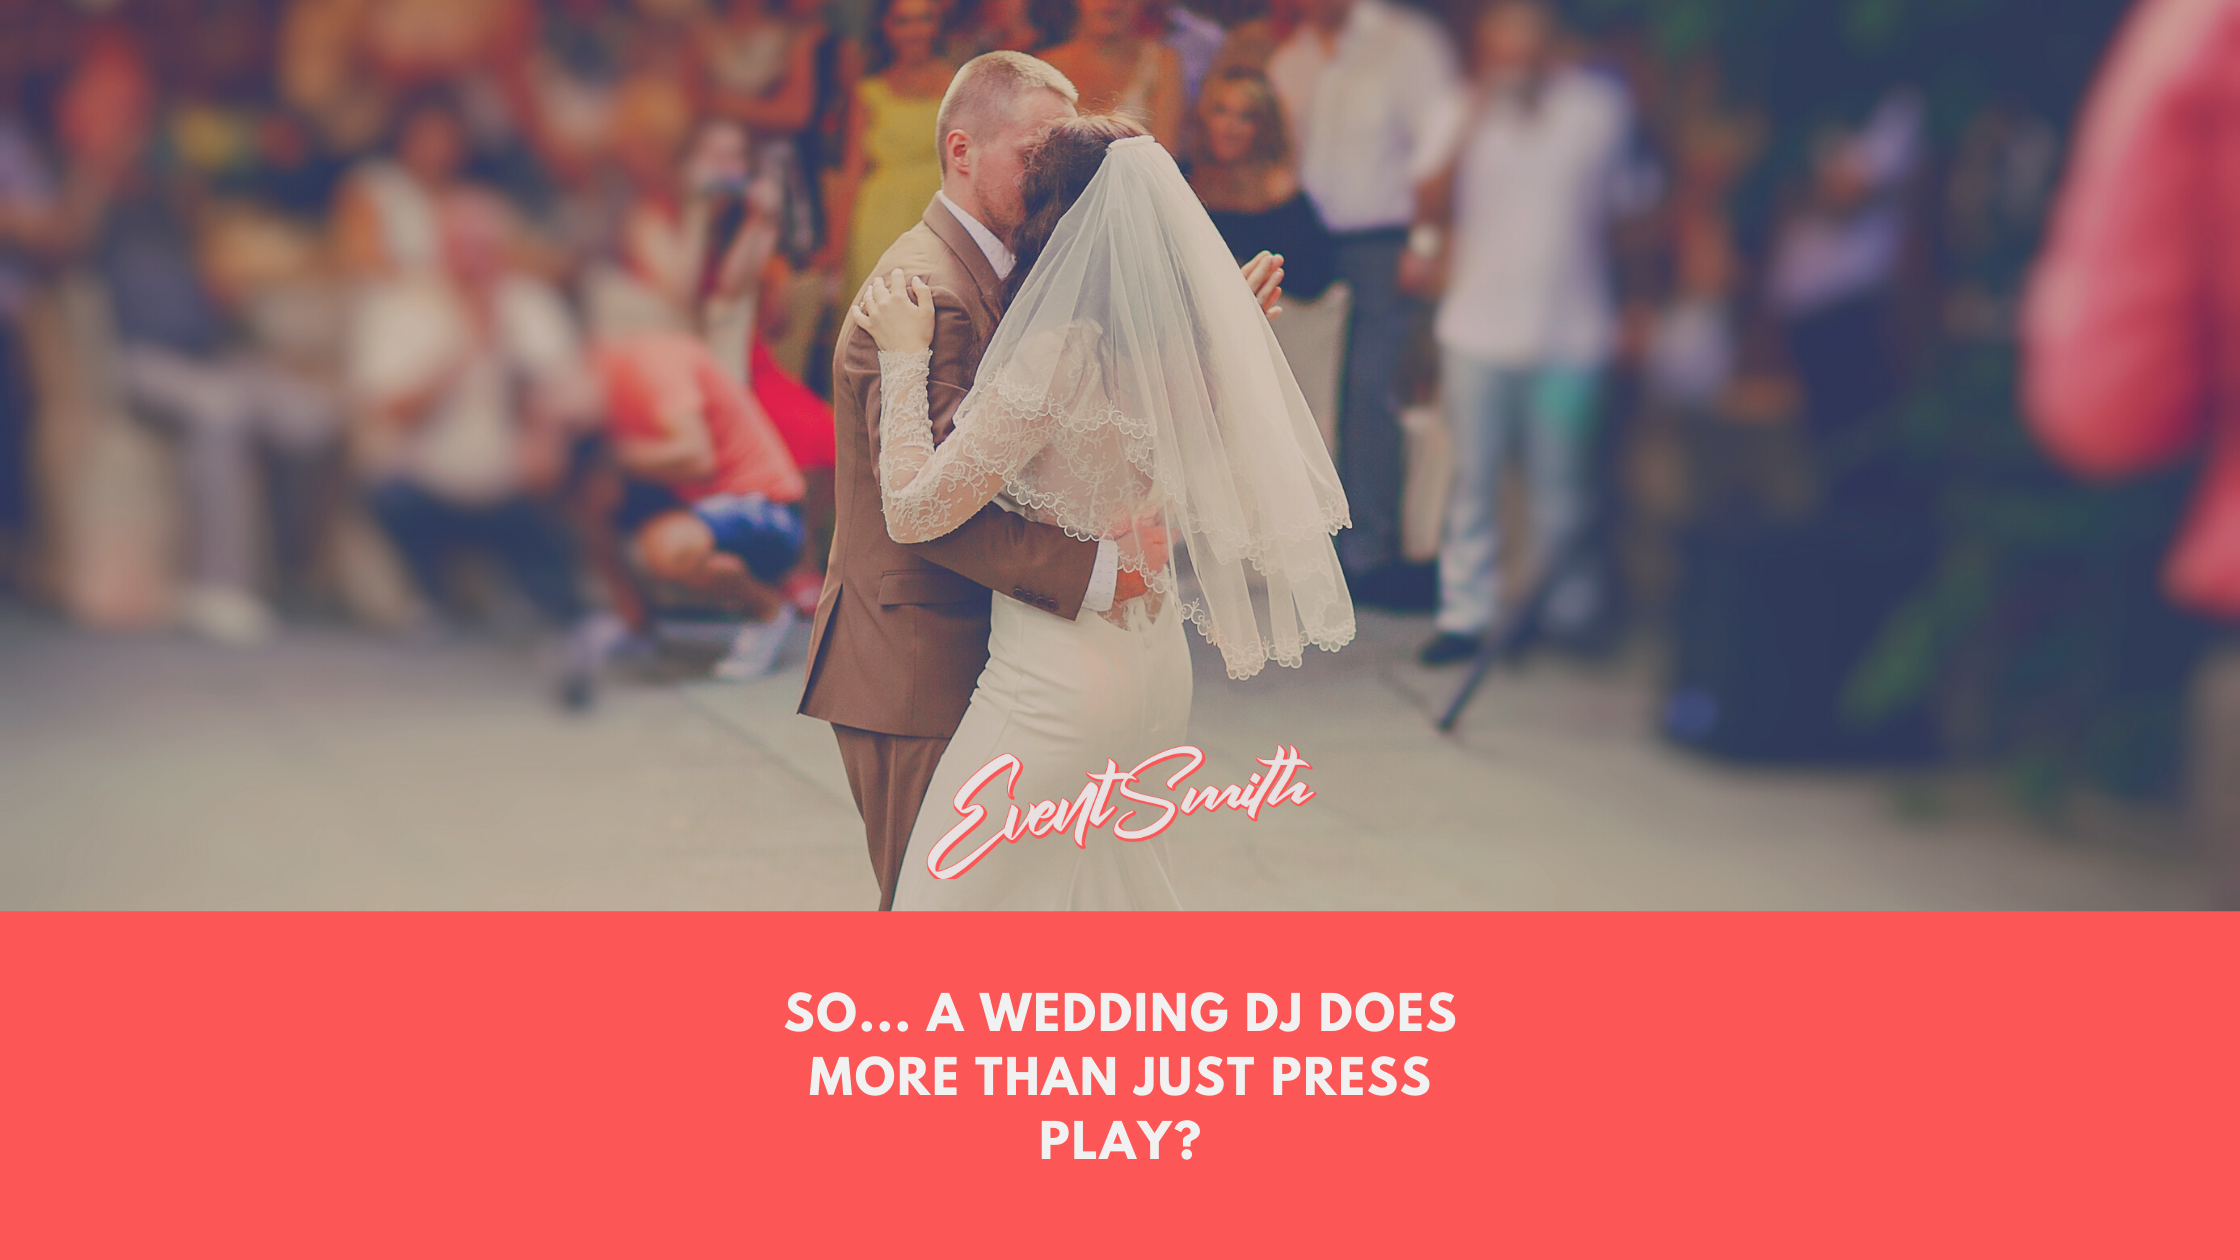 So... A Wedding Dj does more than JUST press play_